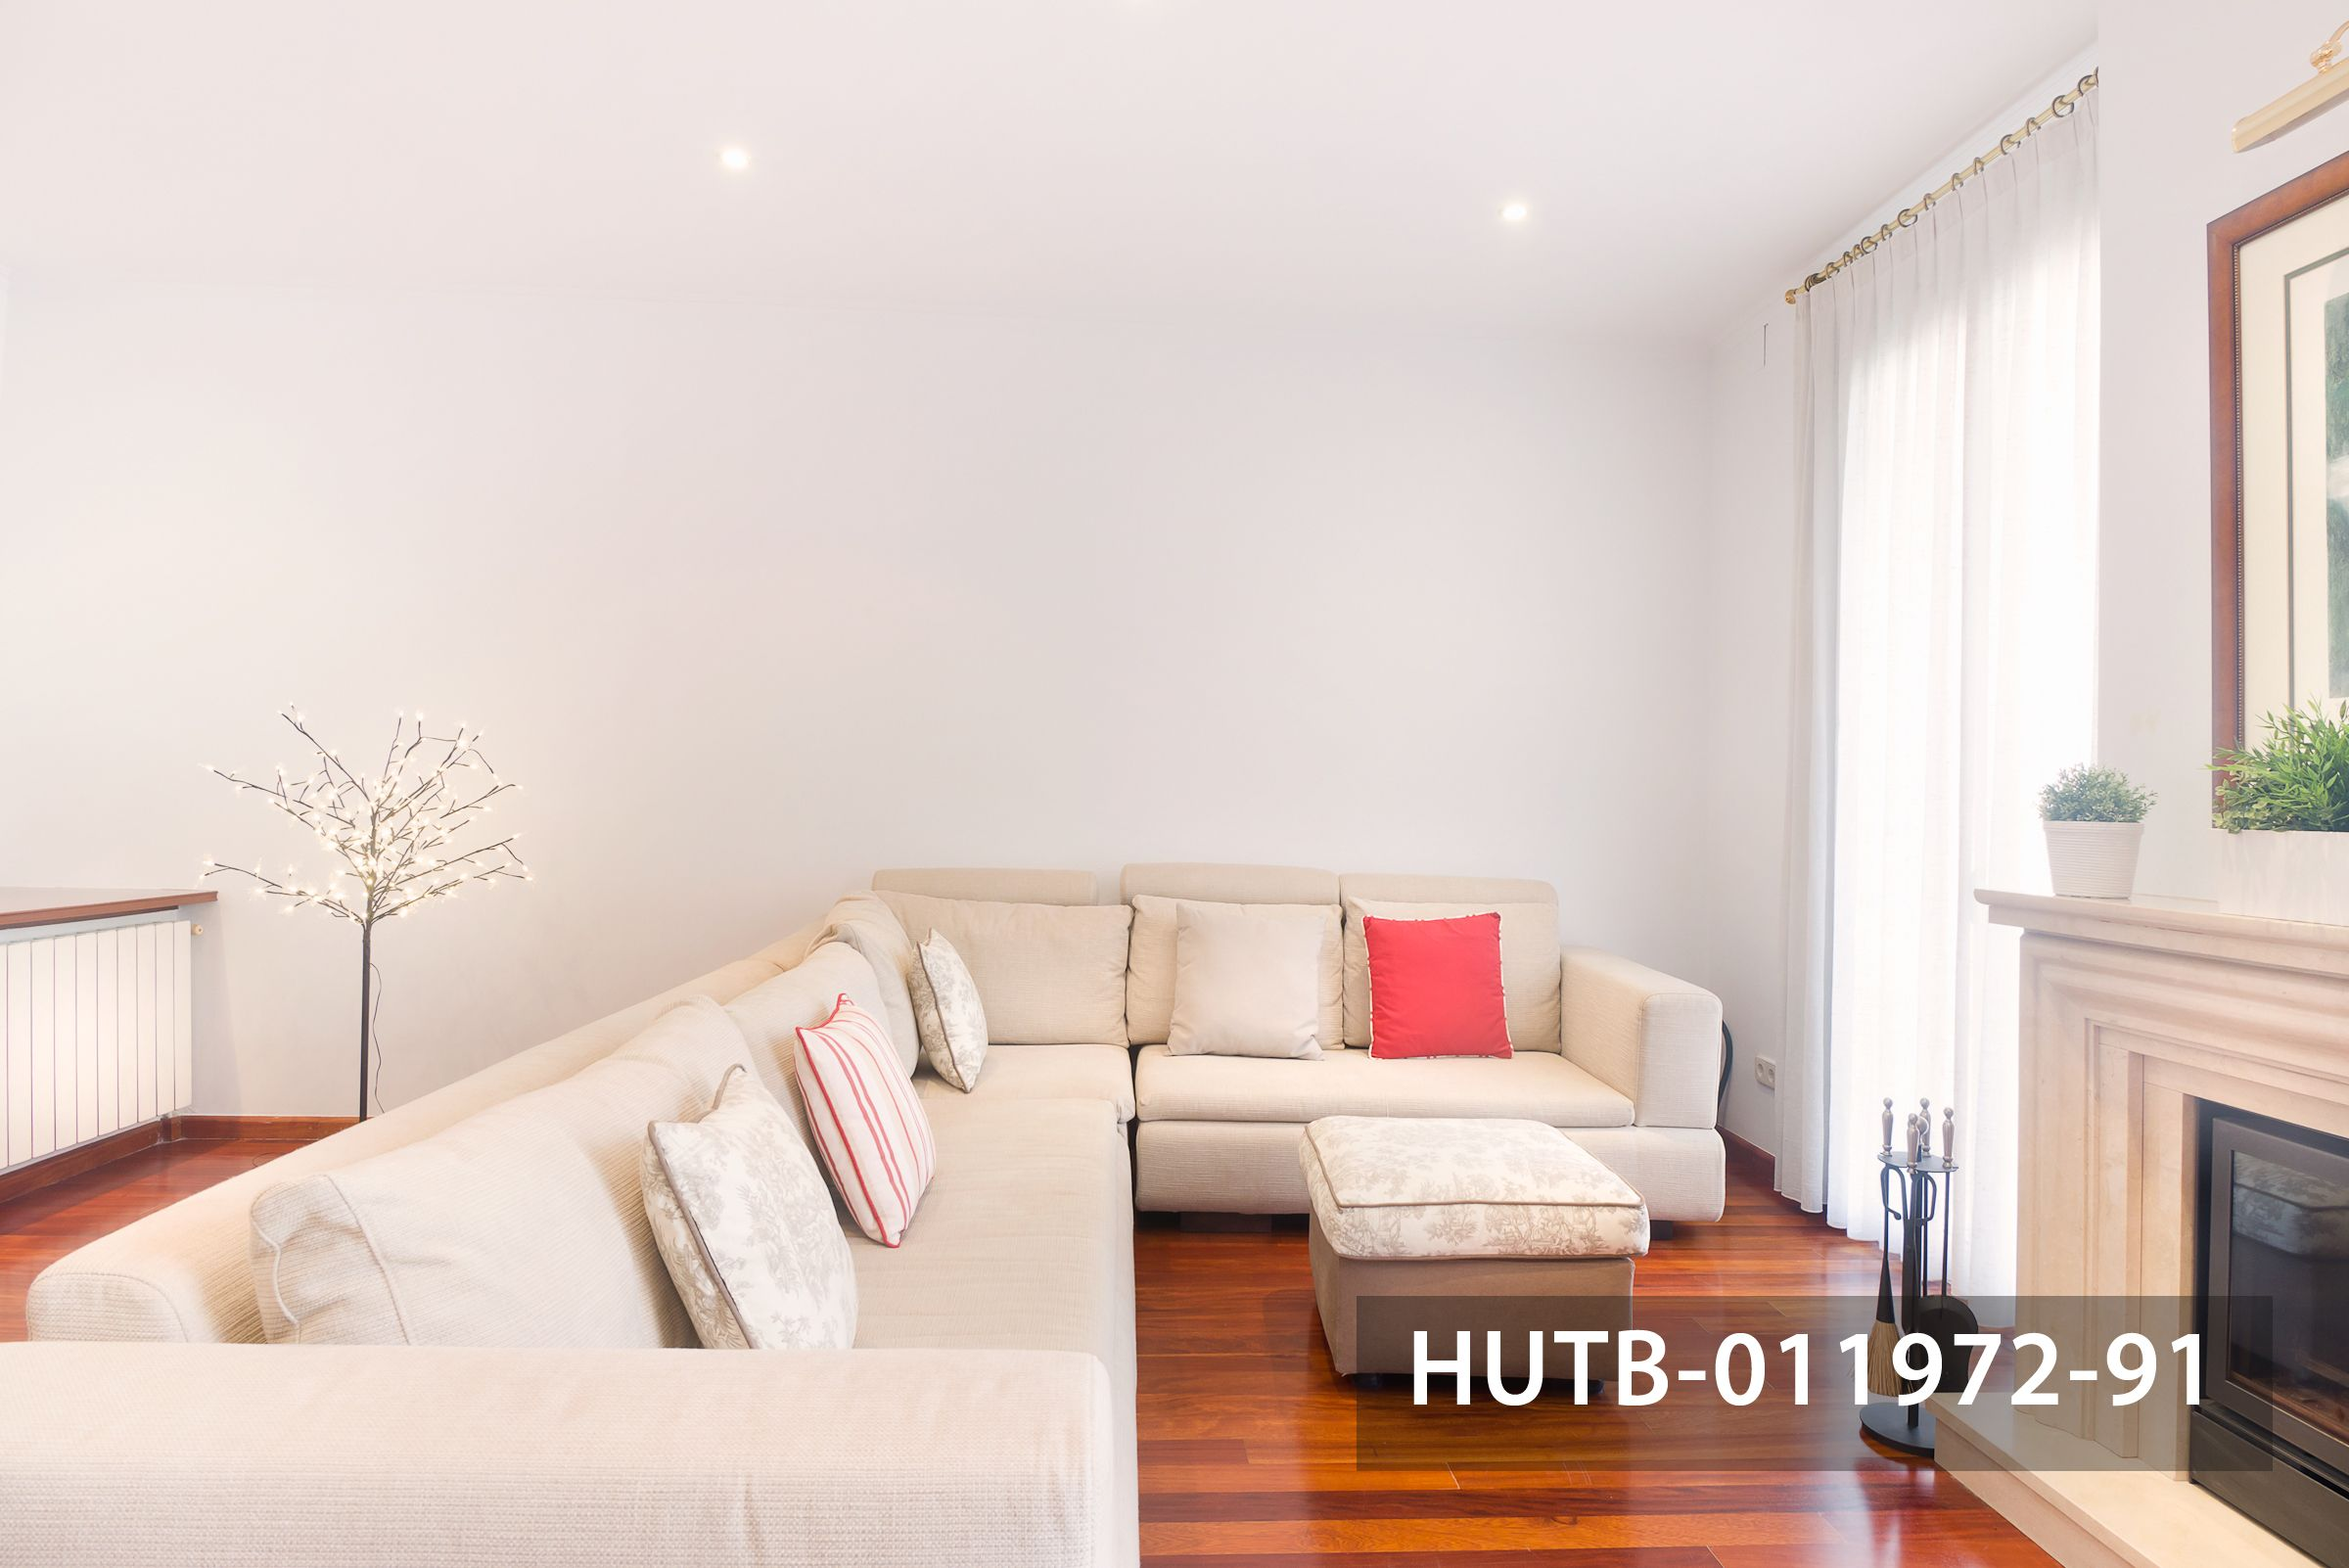 Accommodation of 3 bedrooms in Barcelona